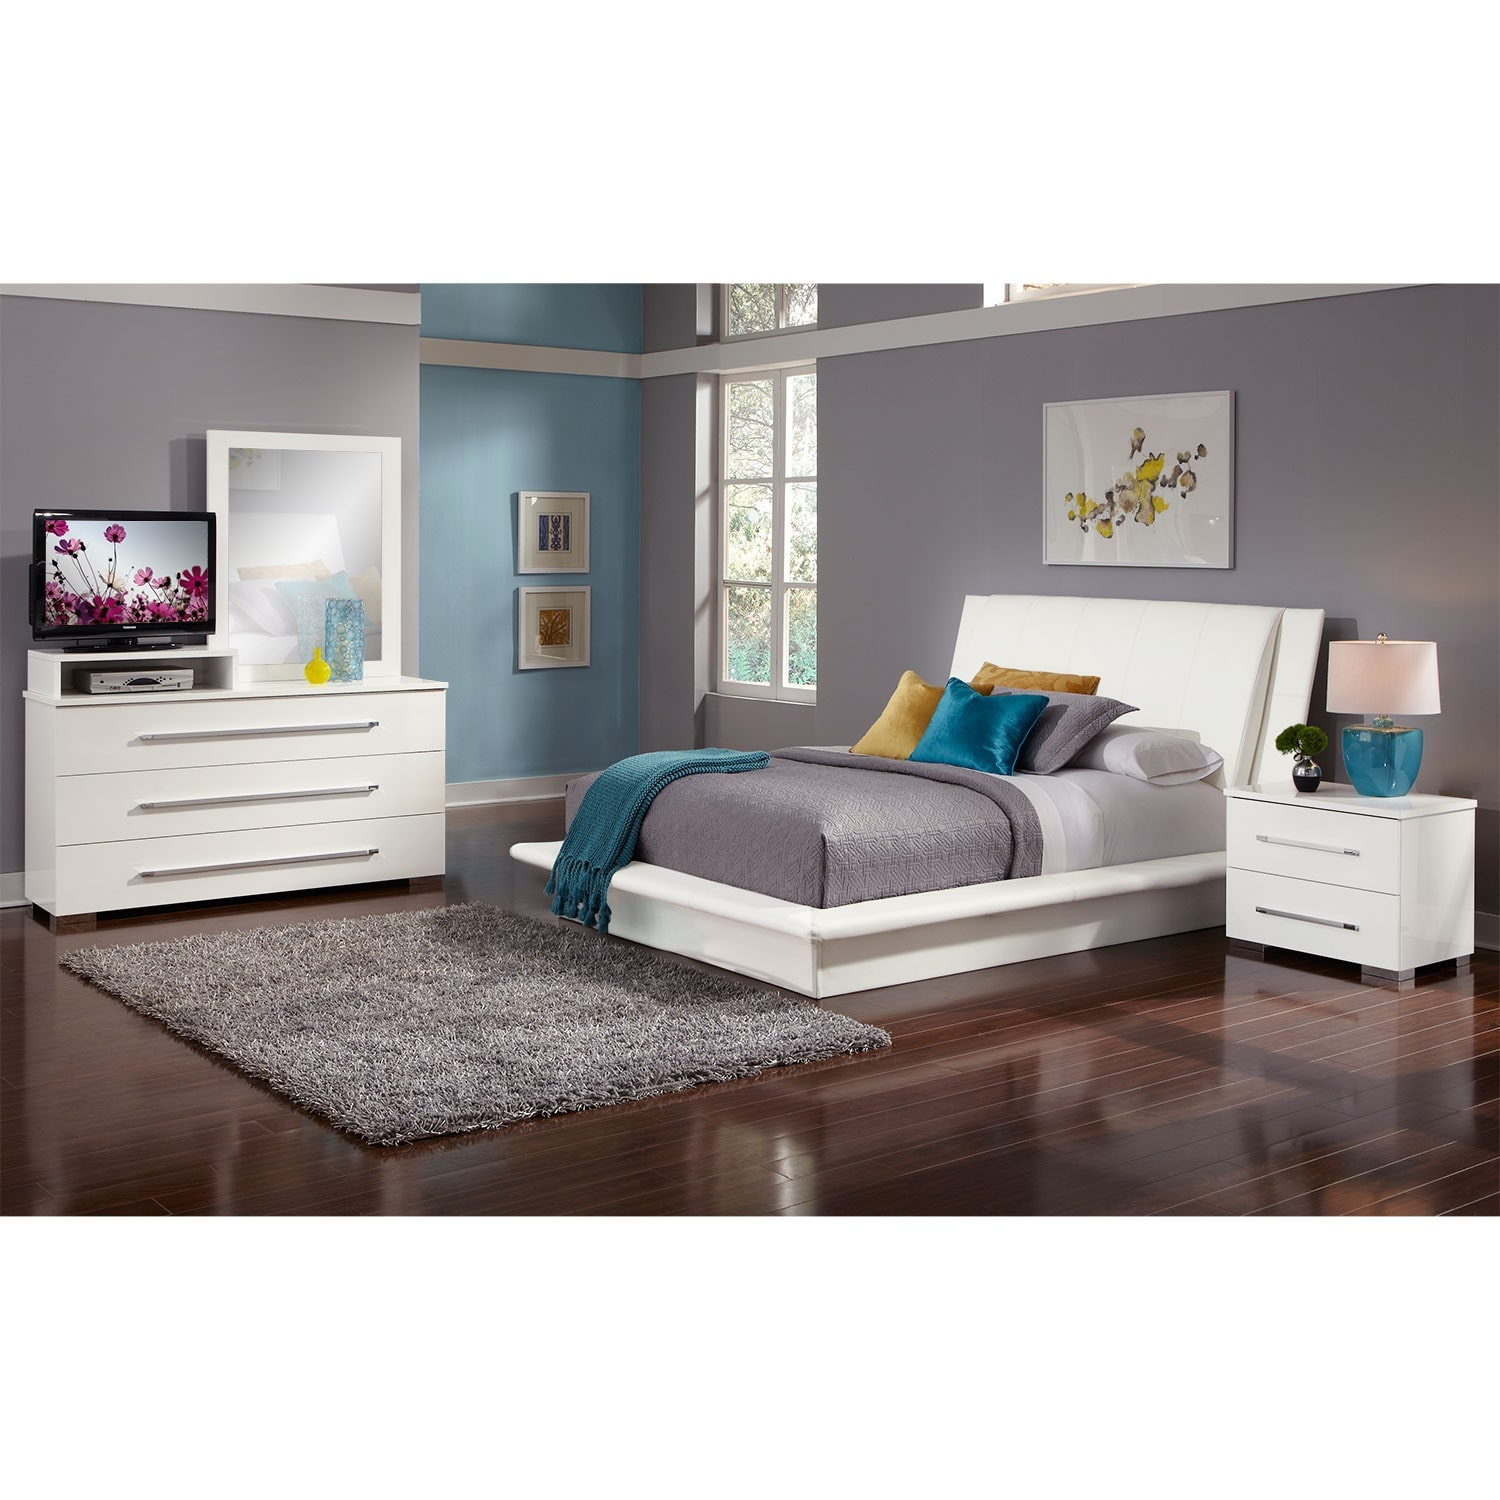 Bedroom Furniture - Dimora 6-Piece King Upholstered Bedroom Set with Media Dresser - White